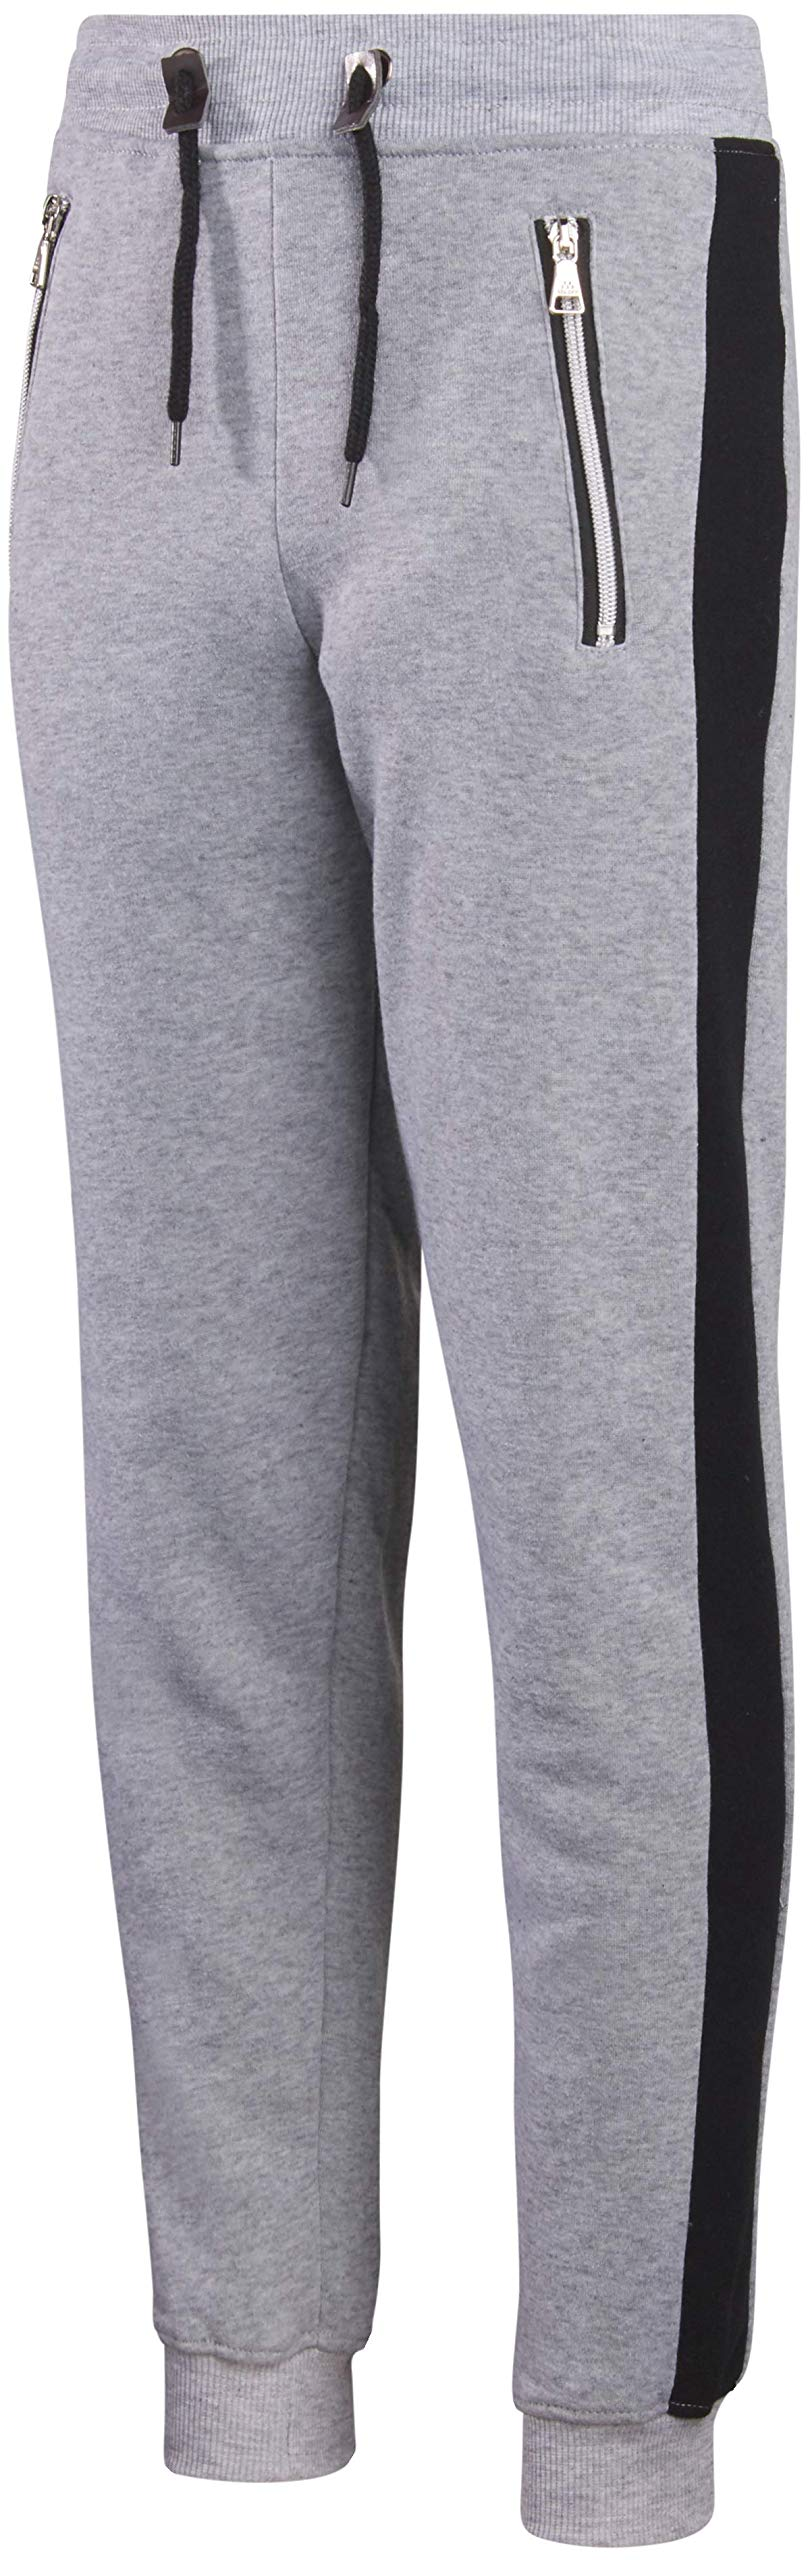 Galaxy by Harvic Boys Active Fleece Jogger Pant with Panel Detail Clothing Active  Pants